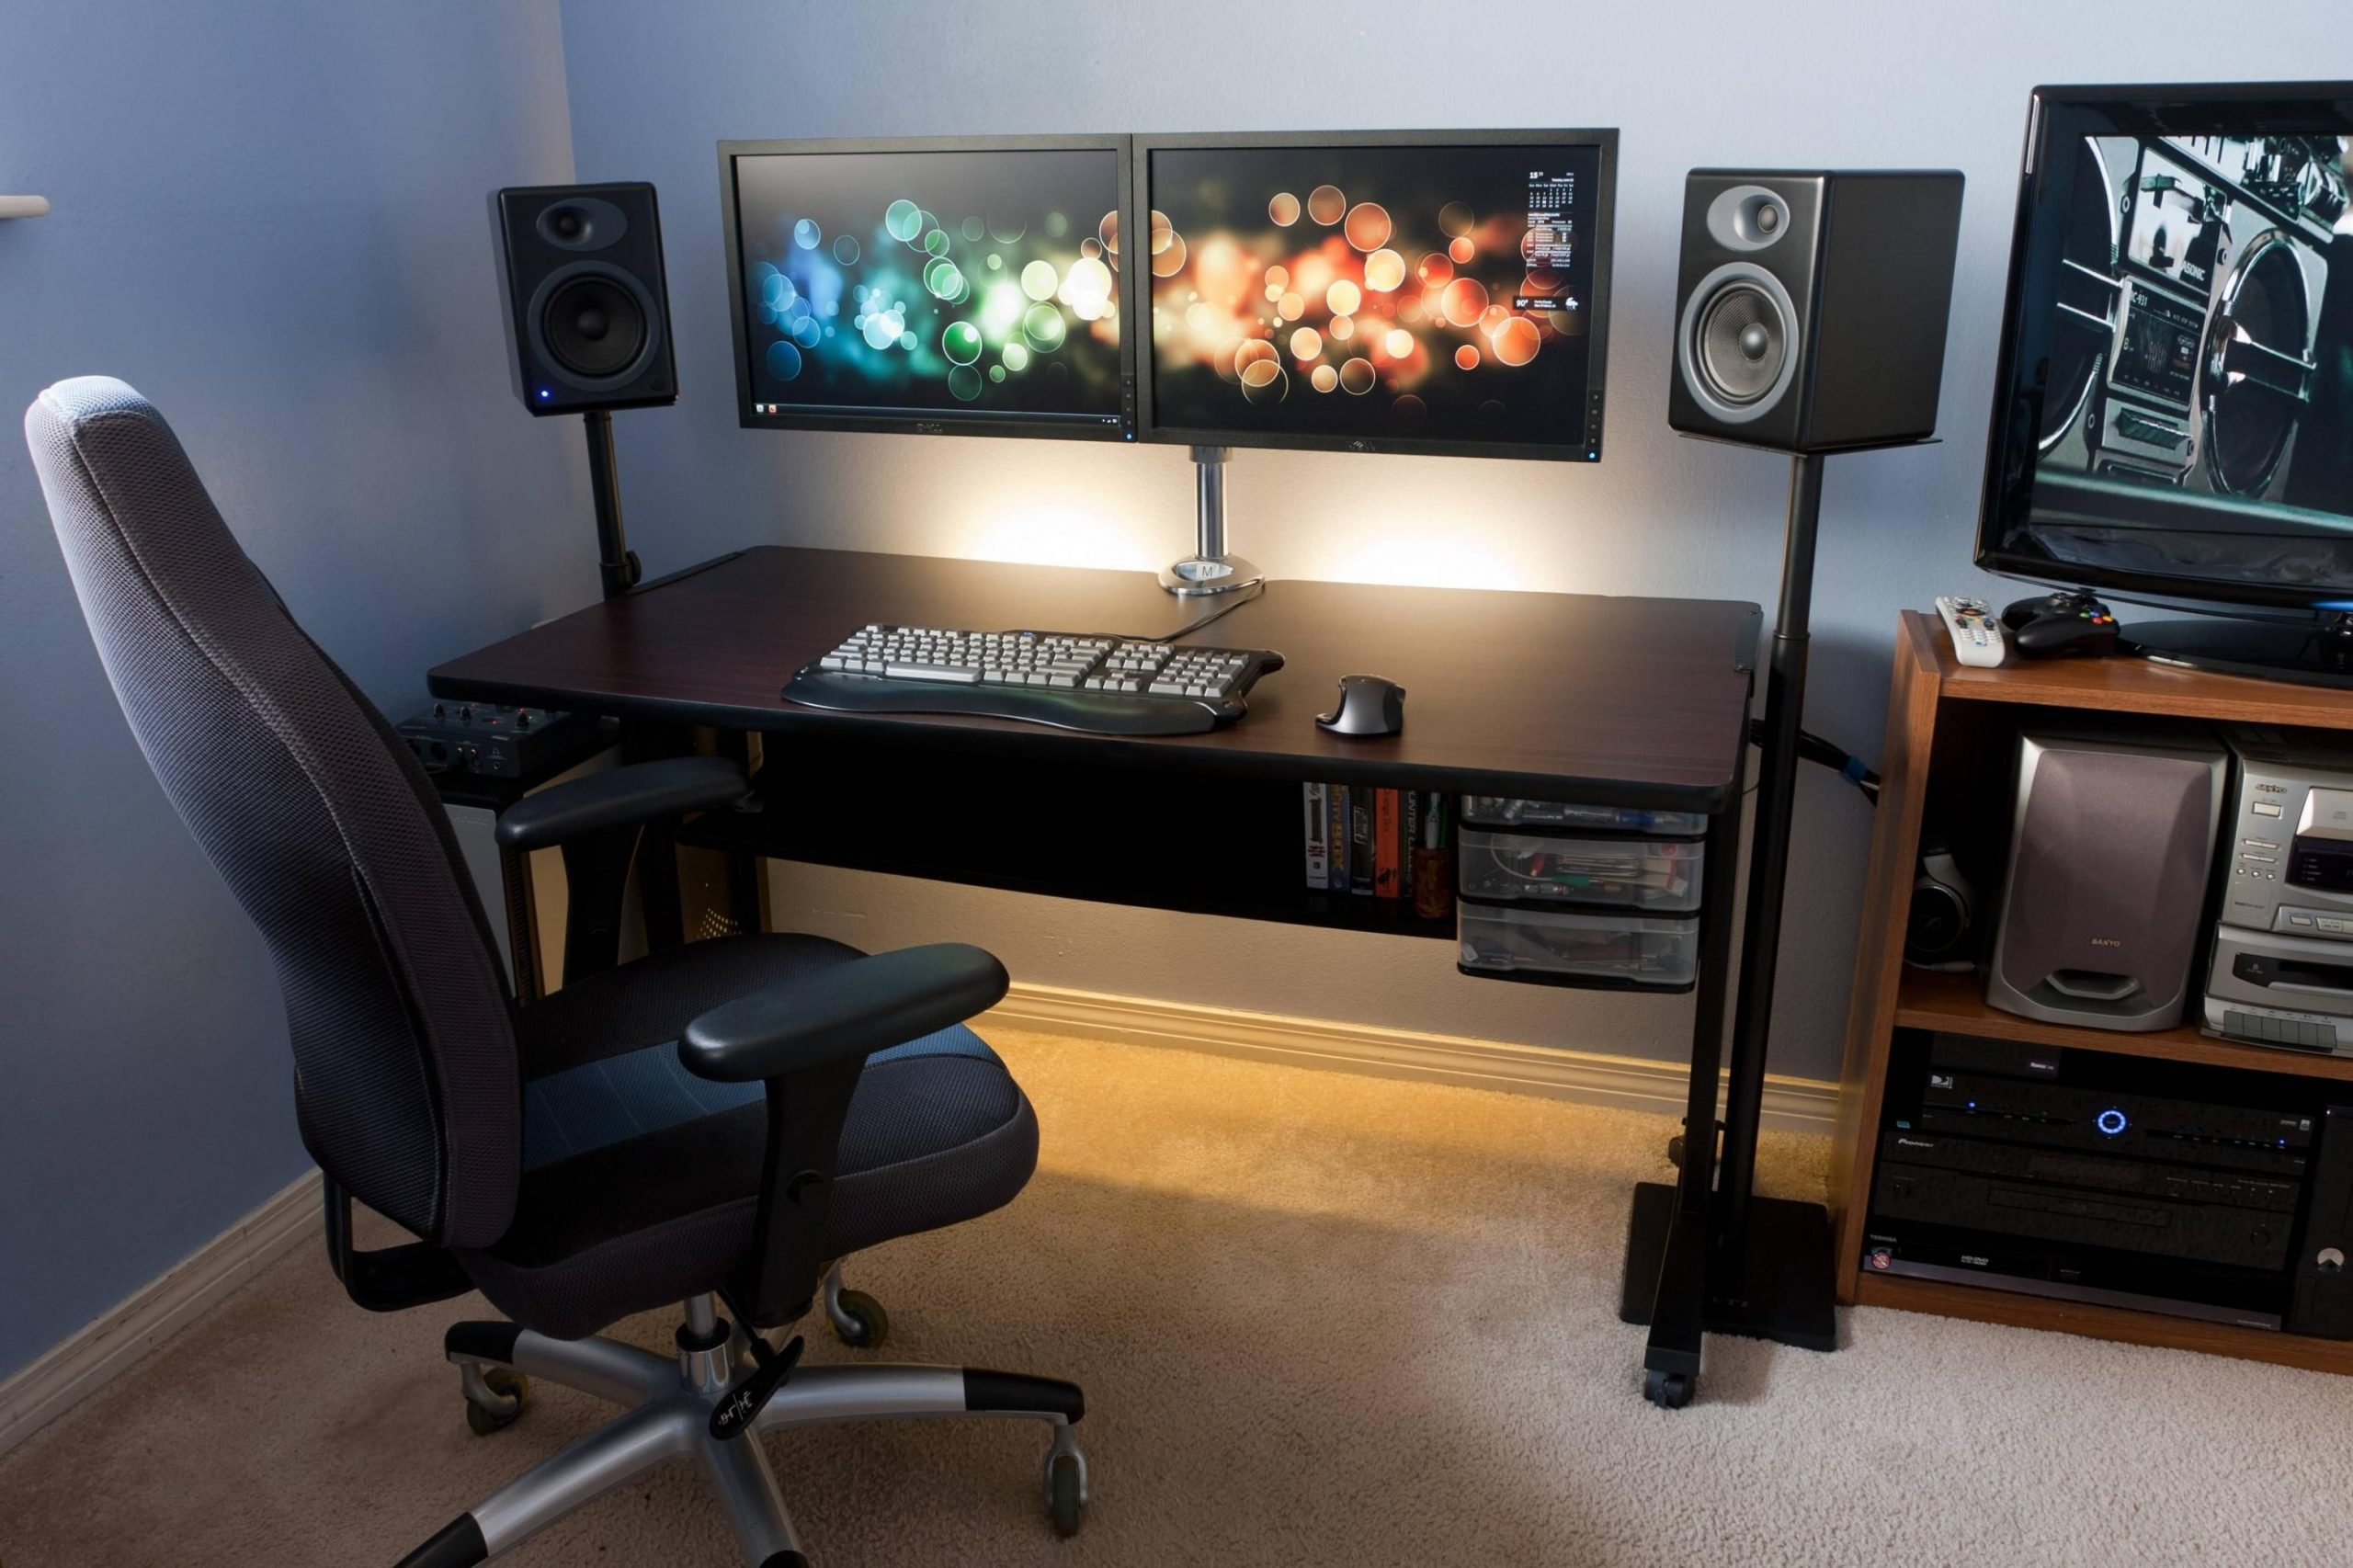 Pin by Chris James on The Rig  Computer desk setup, Minimalist  - Home Office Ideas Dual Monitor